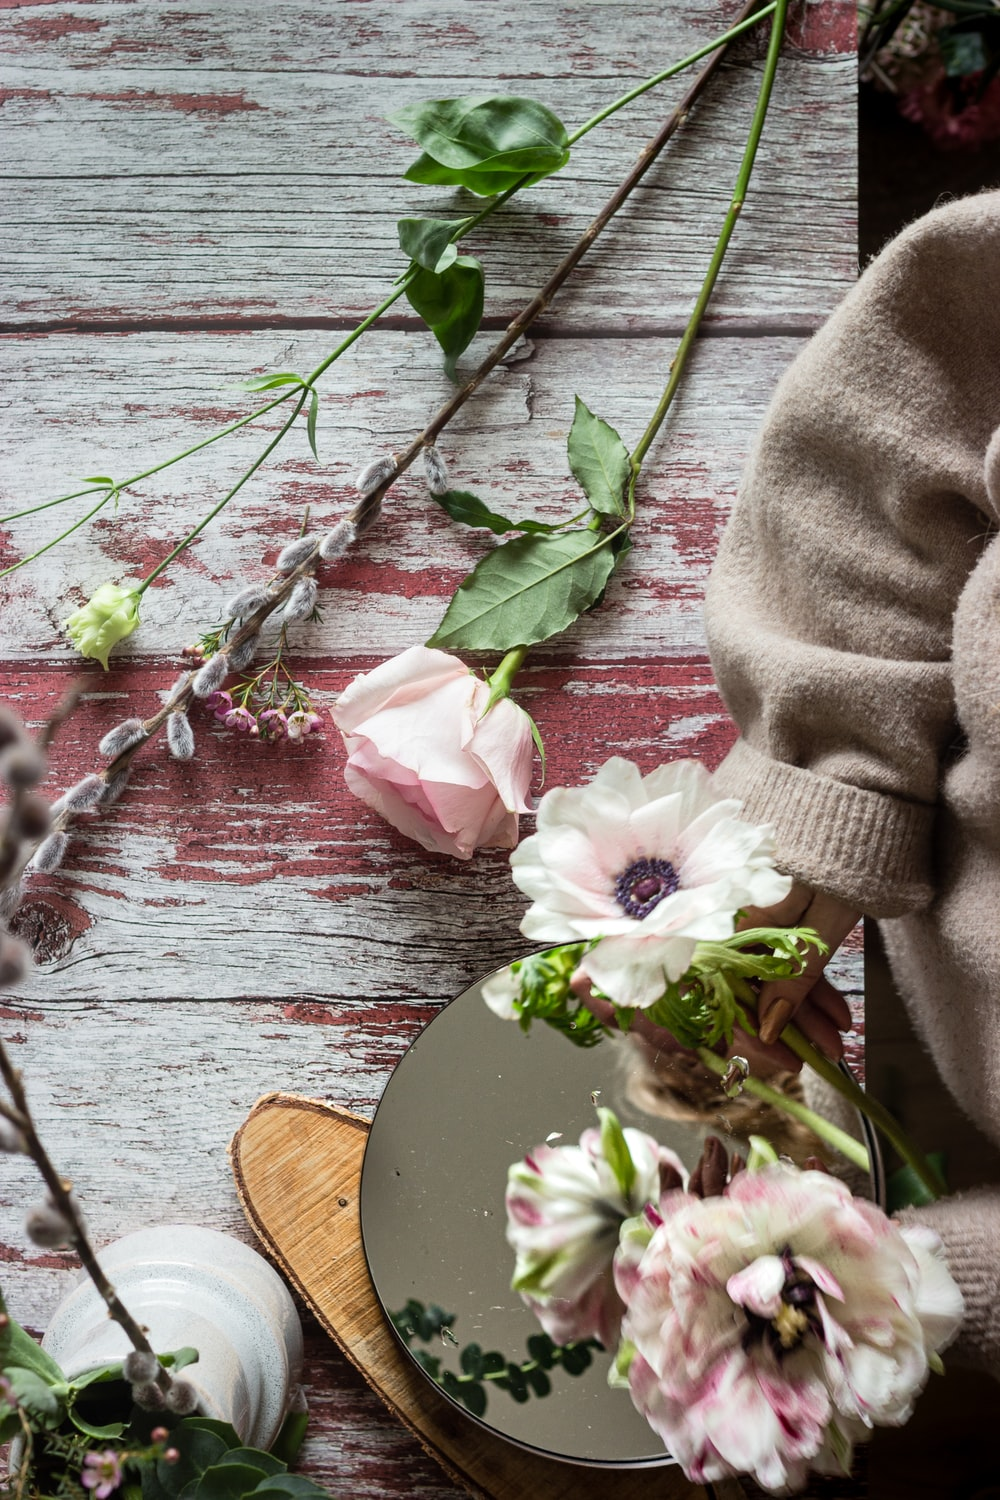 pink and white flower on brown wooden table